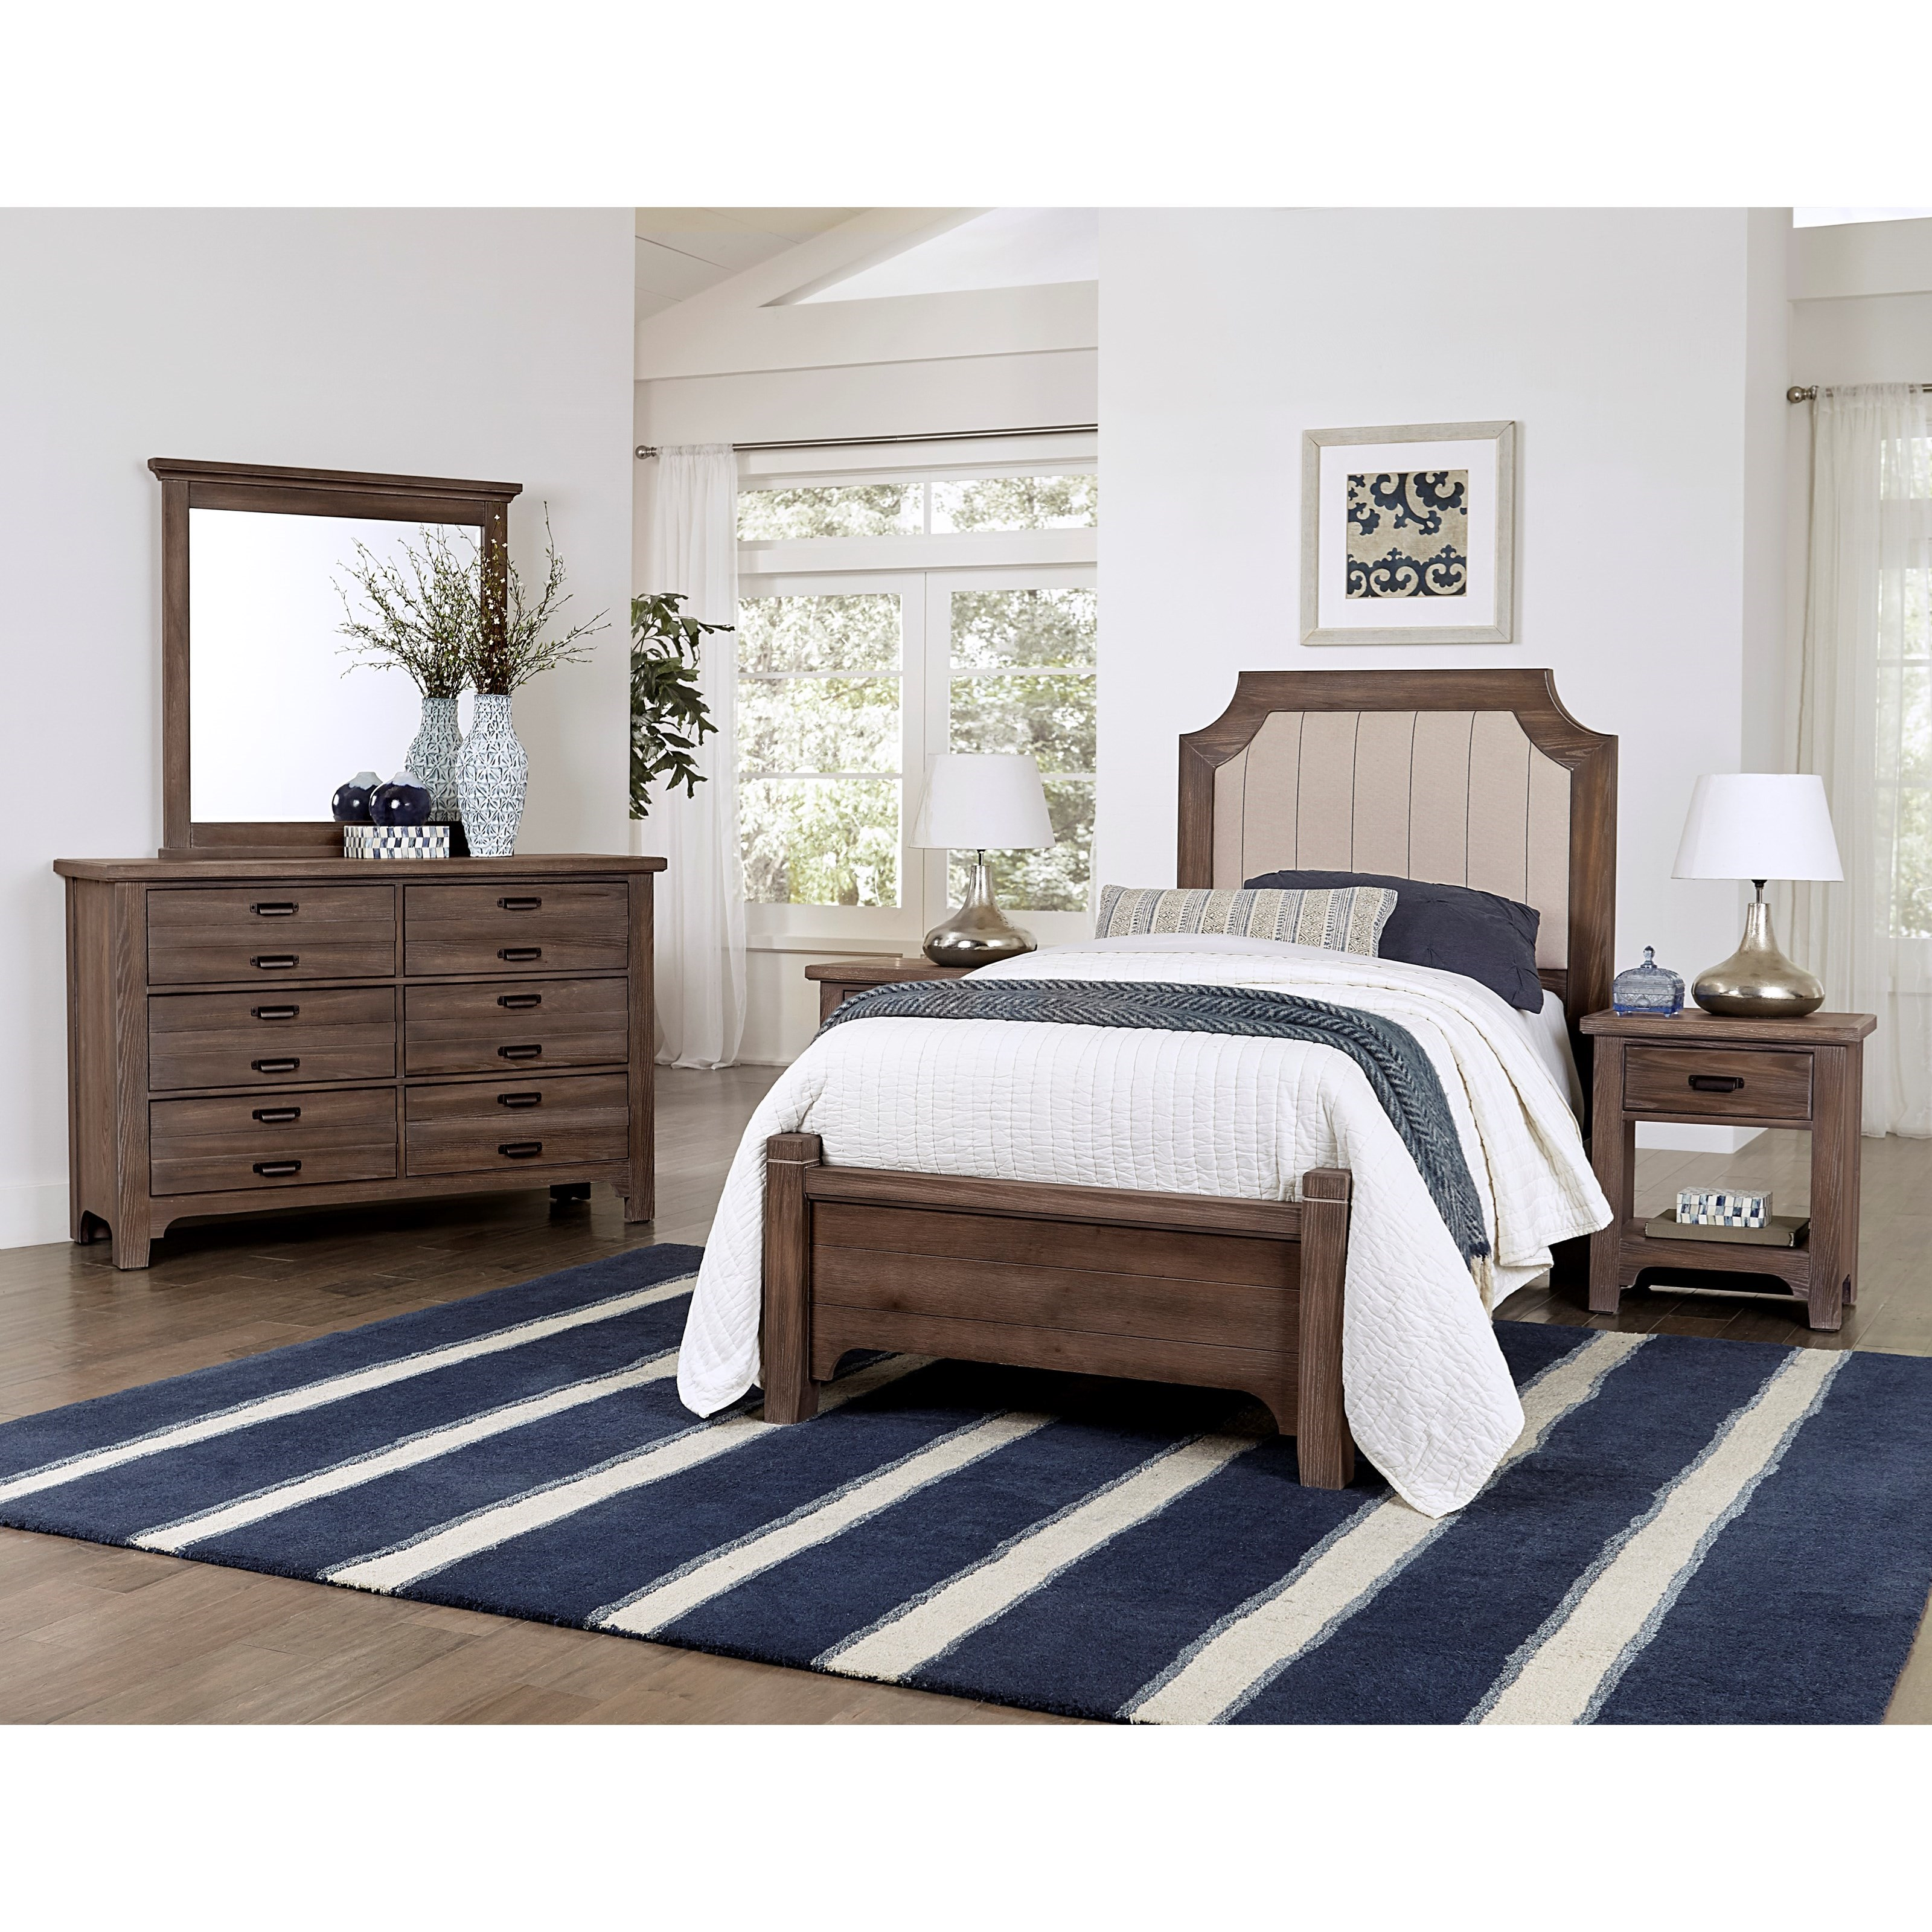 Bungalow Twin Bedroom Group by Laurel Mercantile Co. at Johnny Janosik